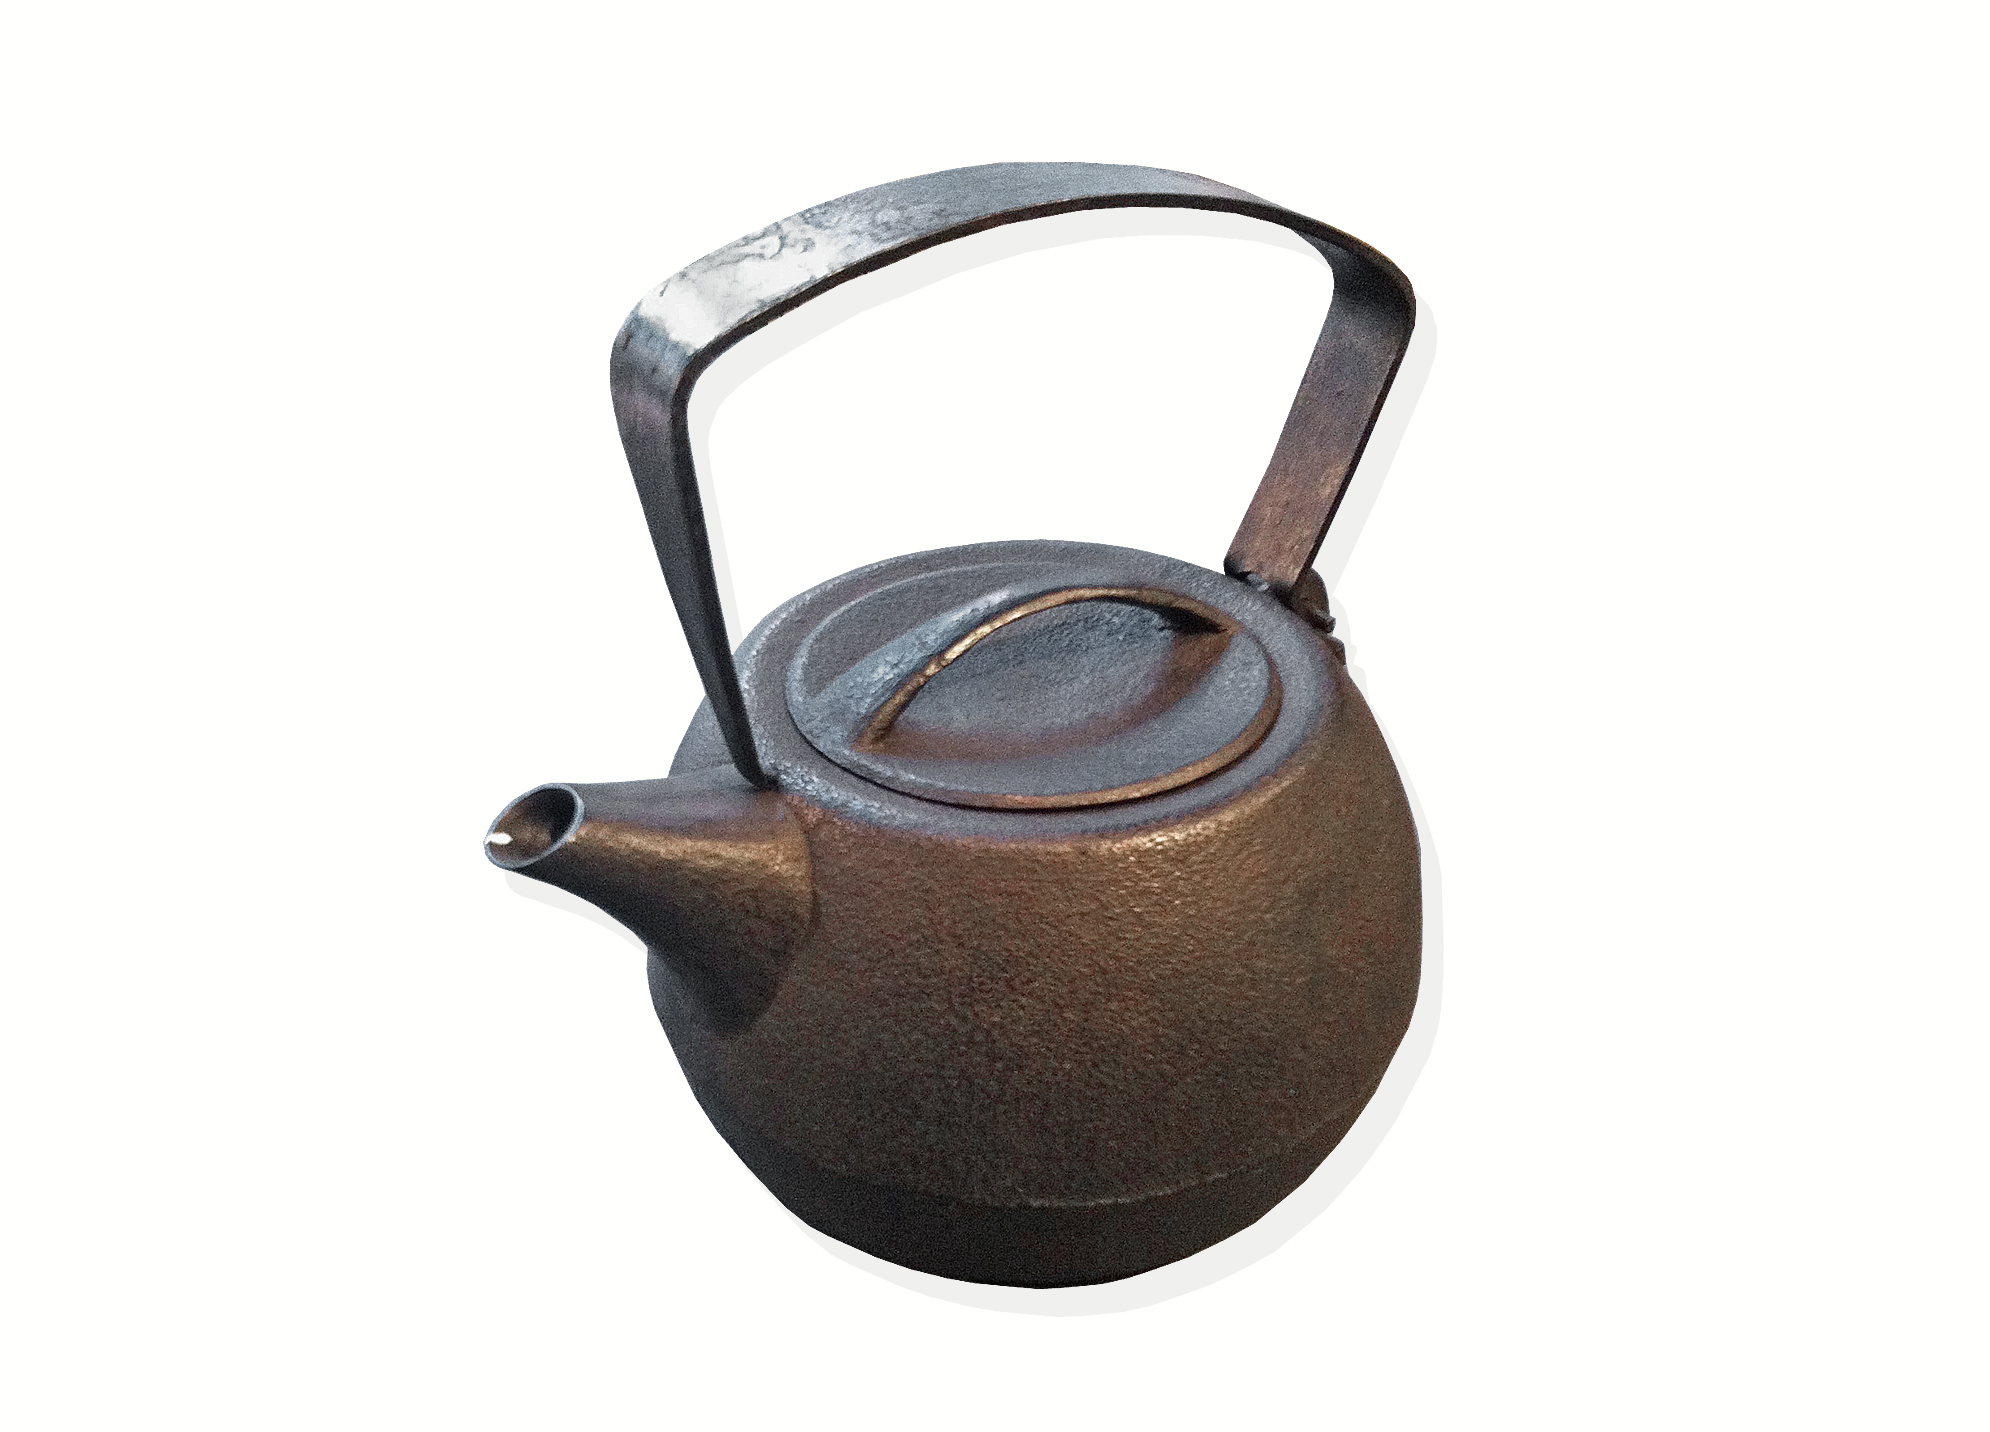 Rare species: Cast-iron vessels have fallen out of favor in many parts of the world. | JASPER MORRISON